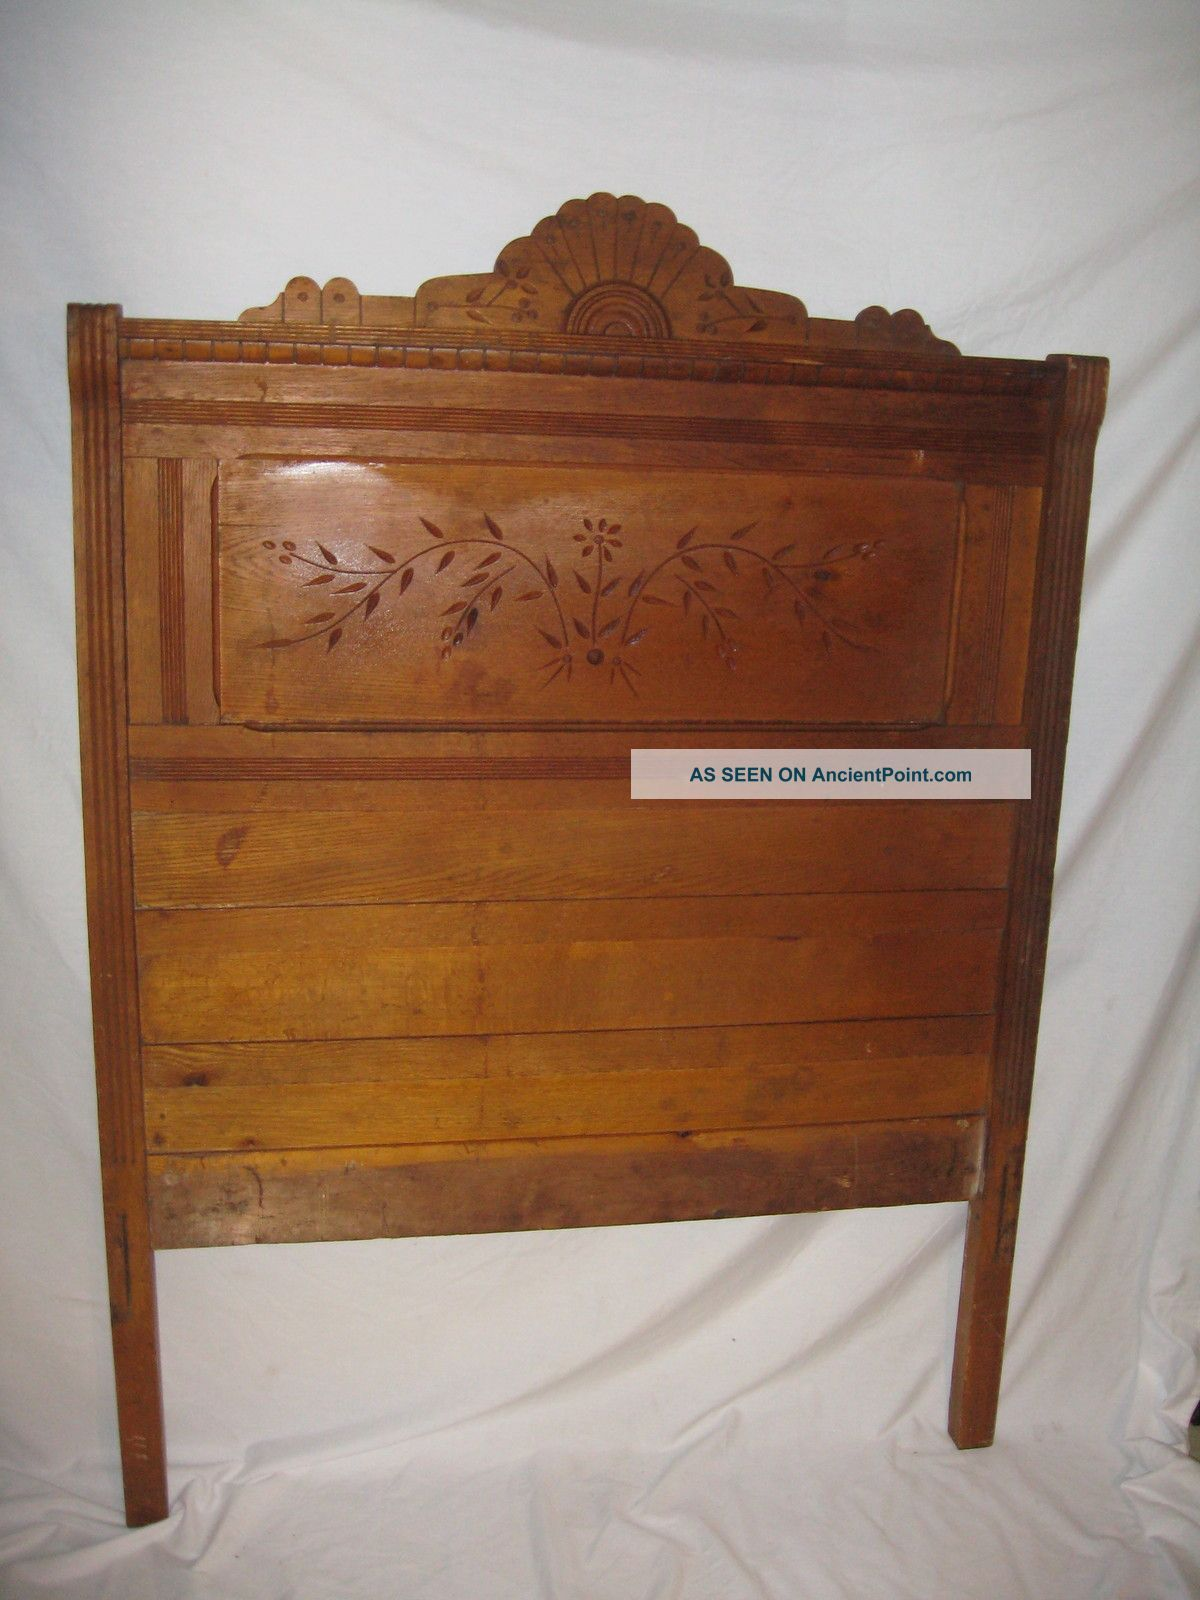 1870 Eastlake walnut bed ~ antique American furniture Victorian bedroom  headboard spoon-carved chip carving - 1870 Eastlake Walnut Bed ~ Antique American Furniture Victorian